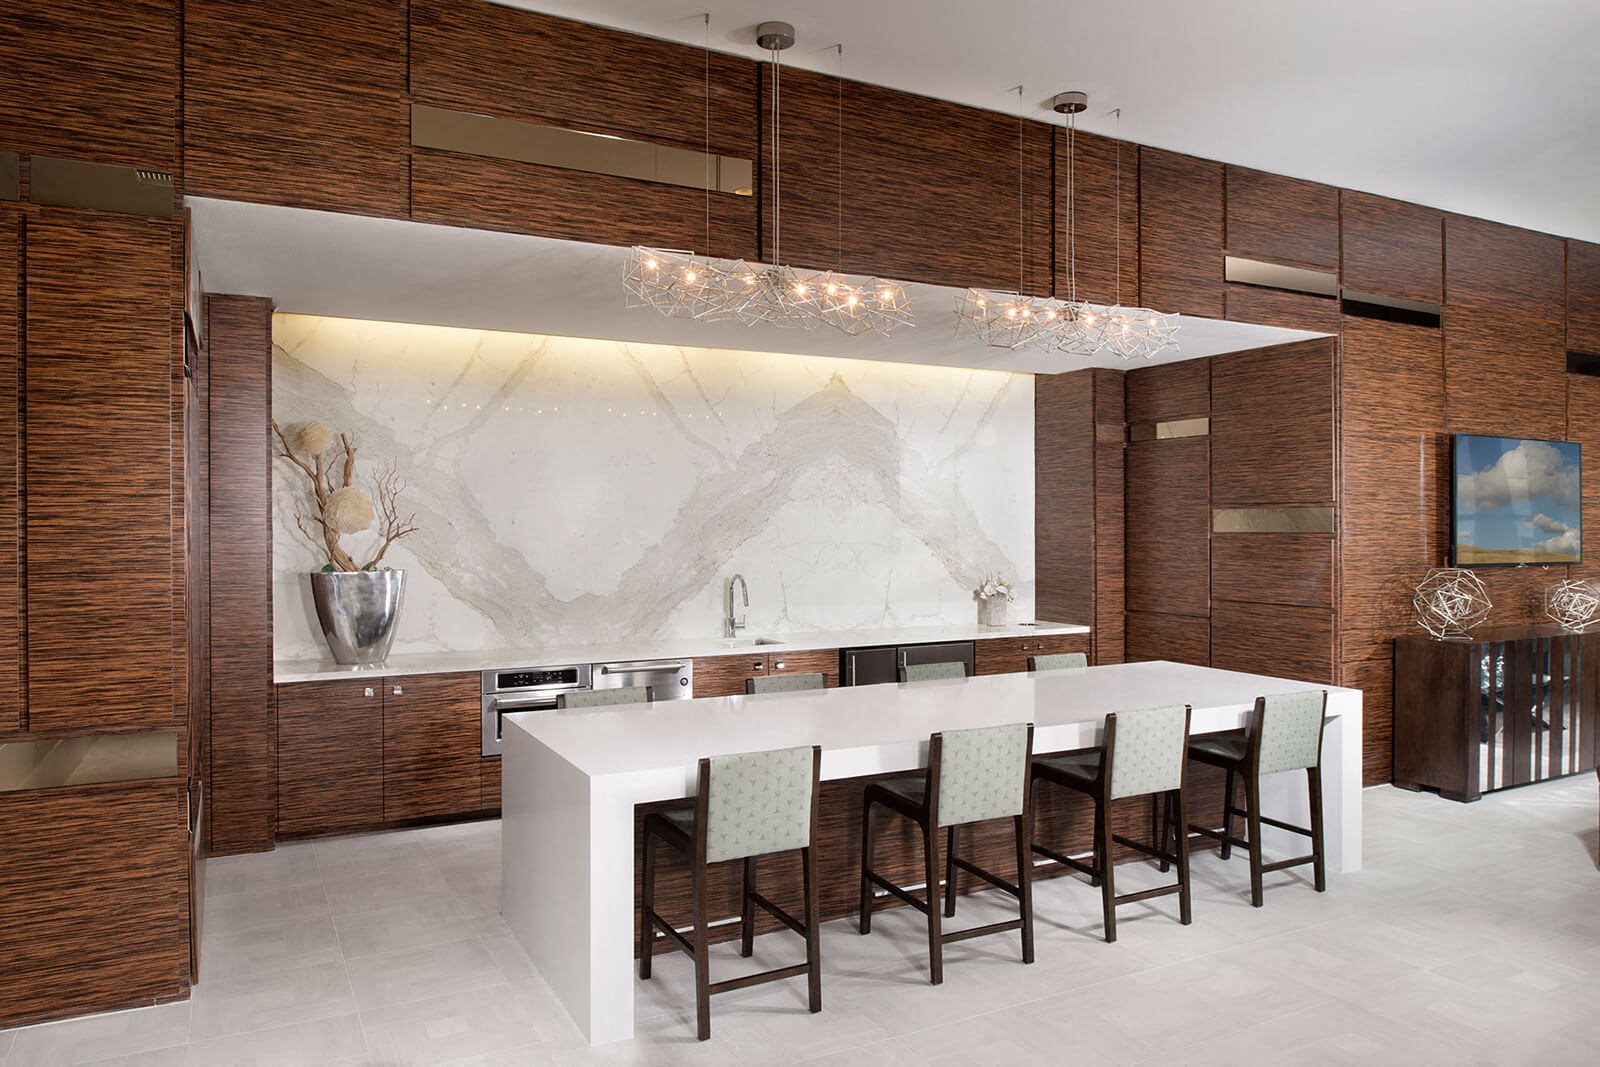 Clubhouse Kitchenette at Blu Harbor by Windsor, Redwood City, CA